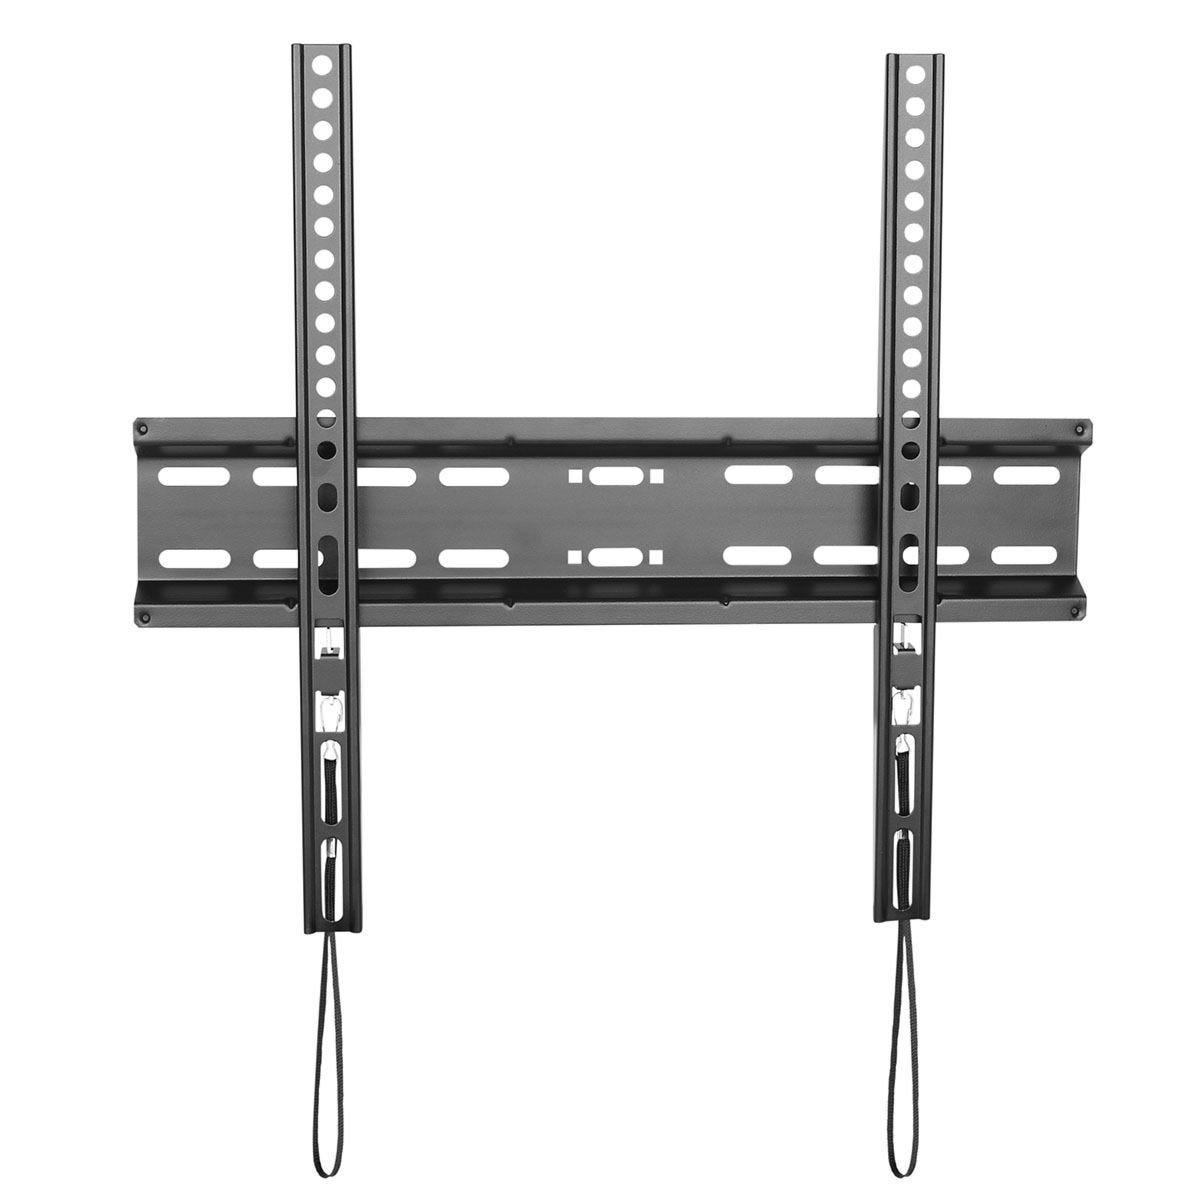 SBOX Fixed Wall Mount PLB-2544F for 32-55inch Flat Panel TV - Black